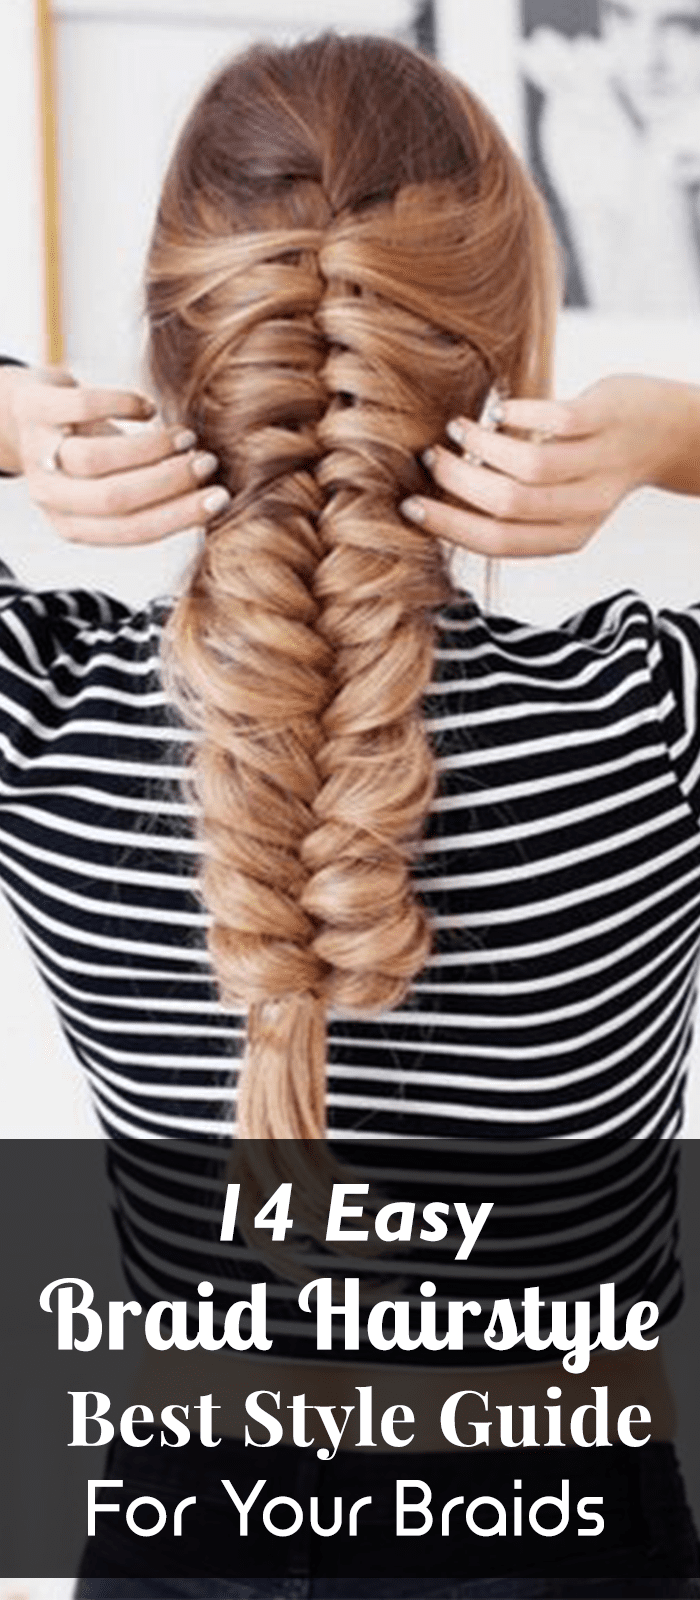 14 Easy Braid Hairstyle – Best Style Guide For Your Braids